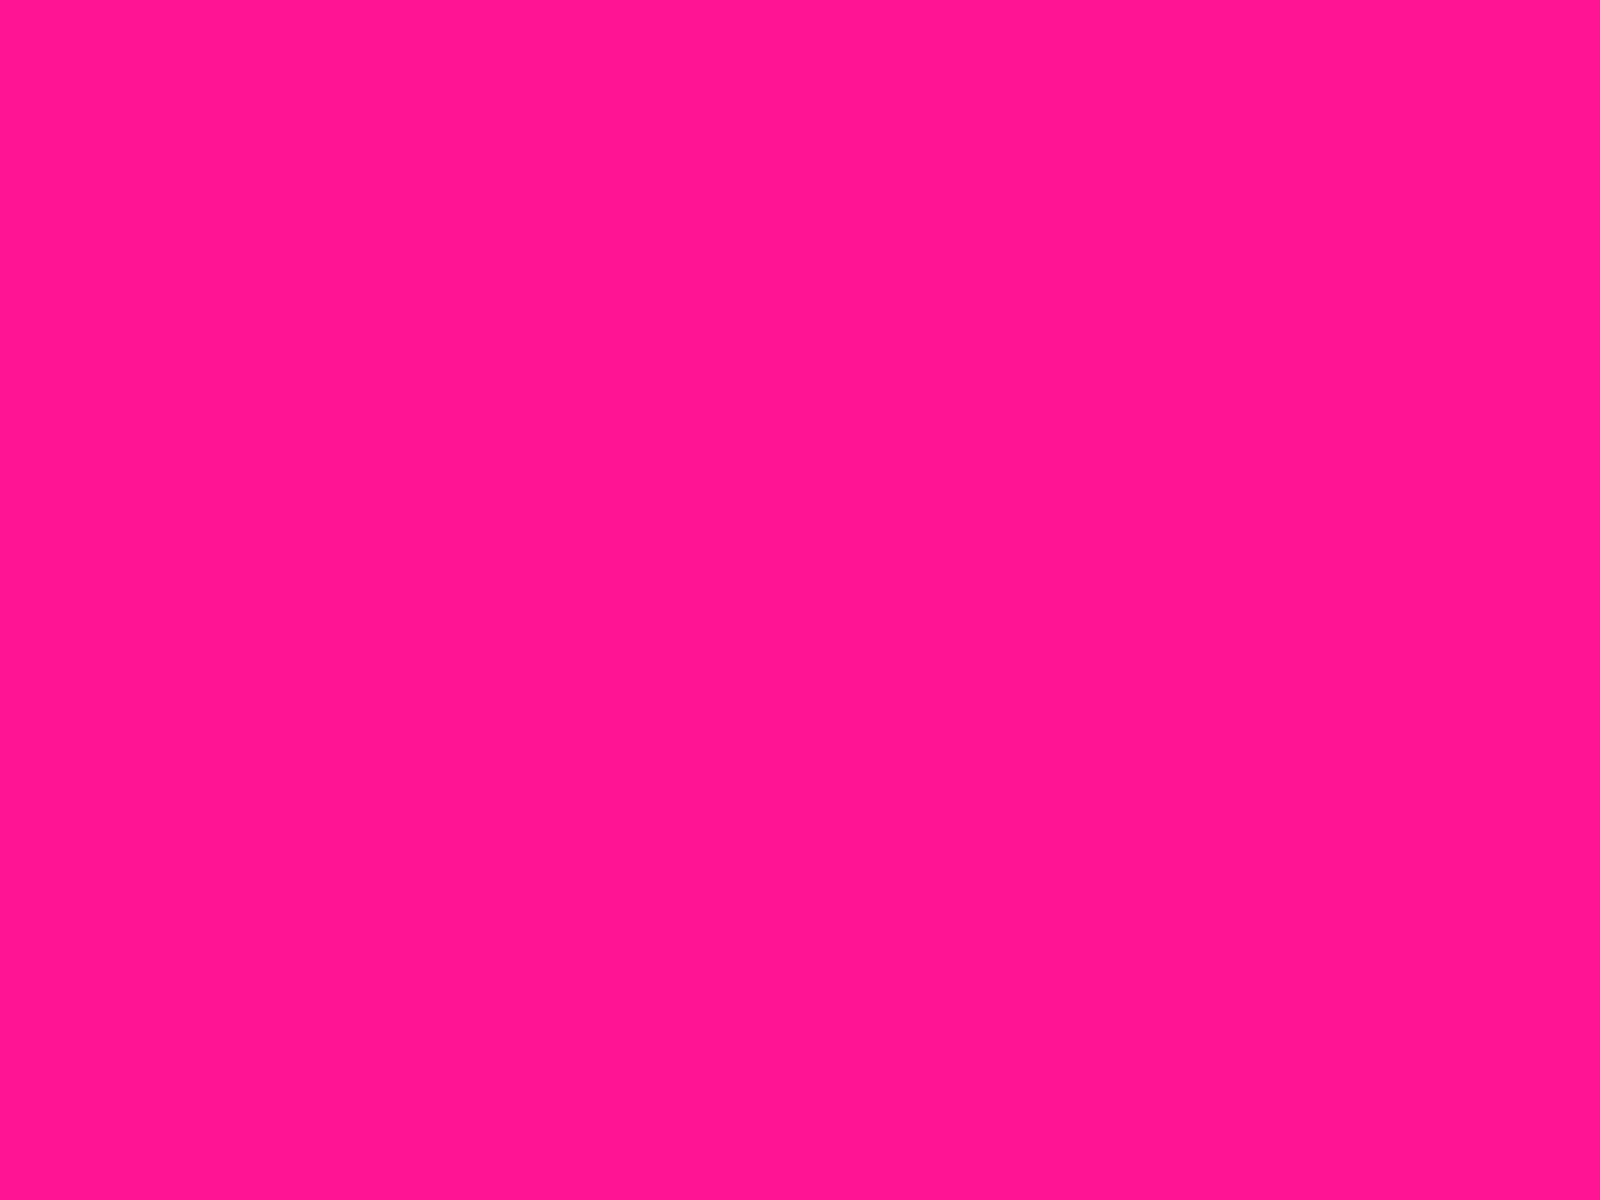 1600x1200 Fluorescent Pink Solid Color Background